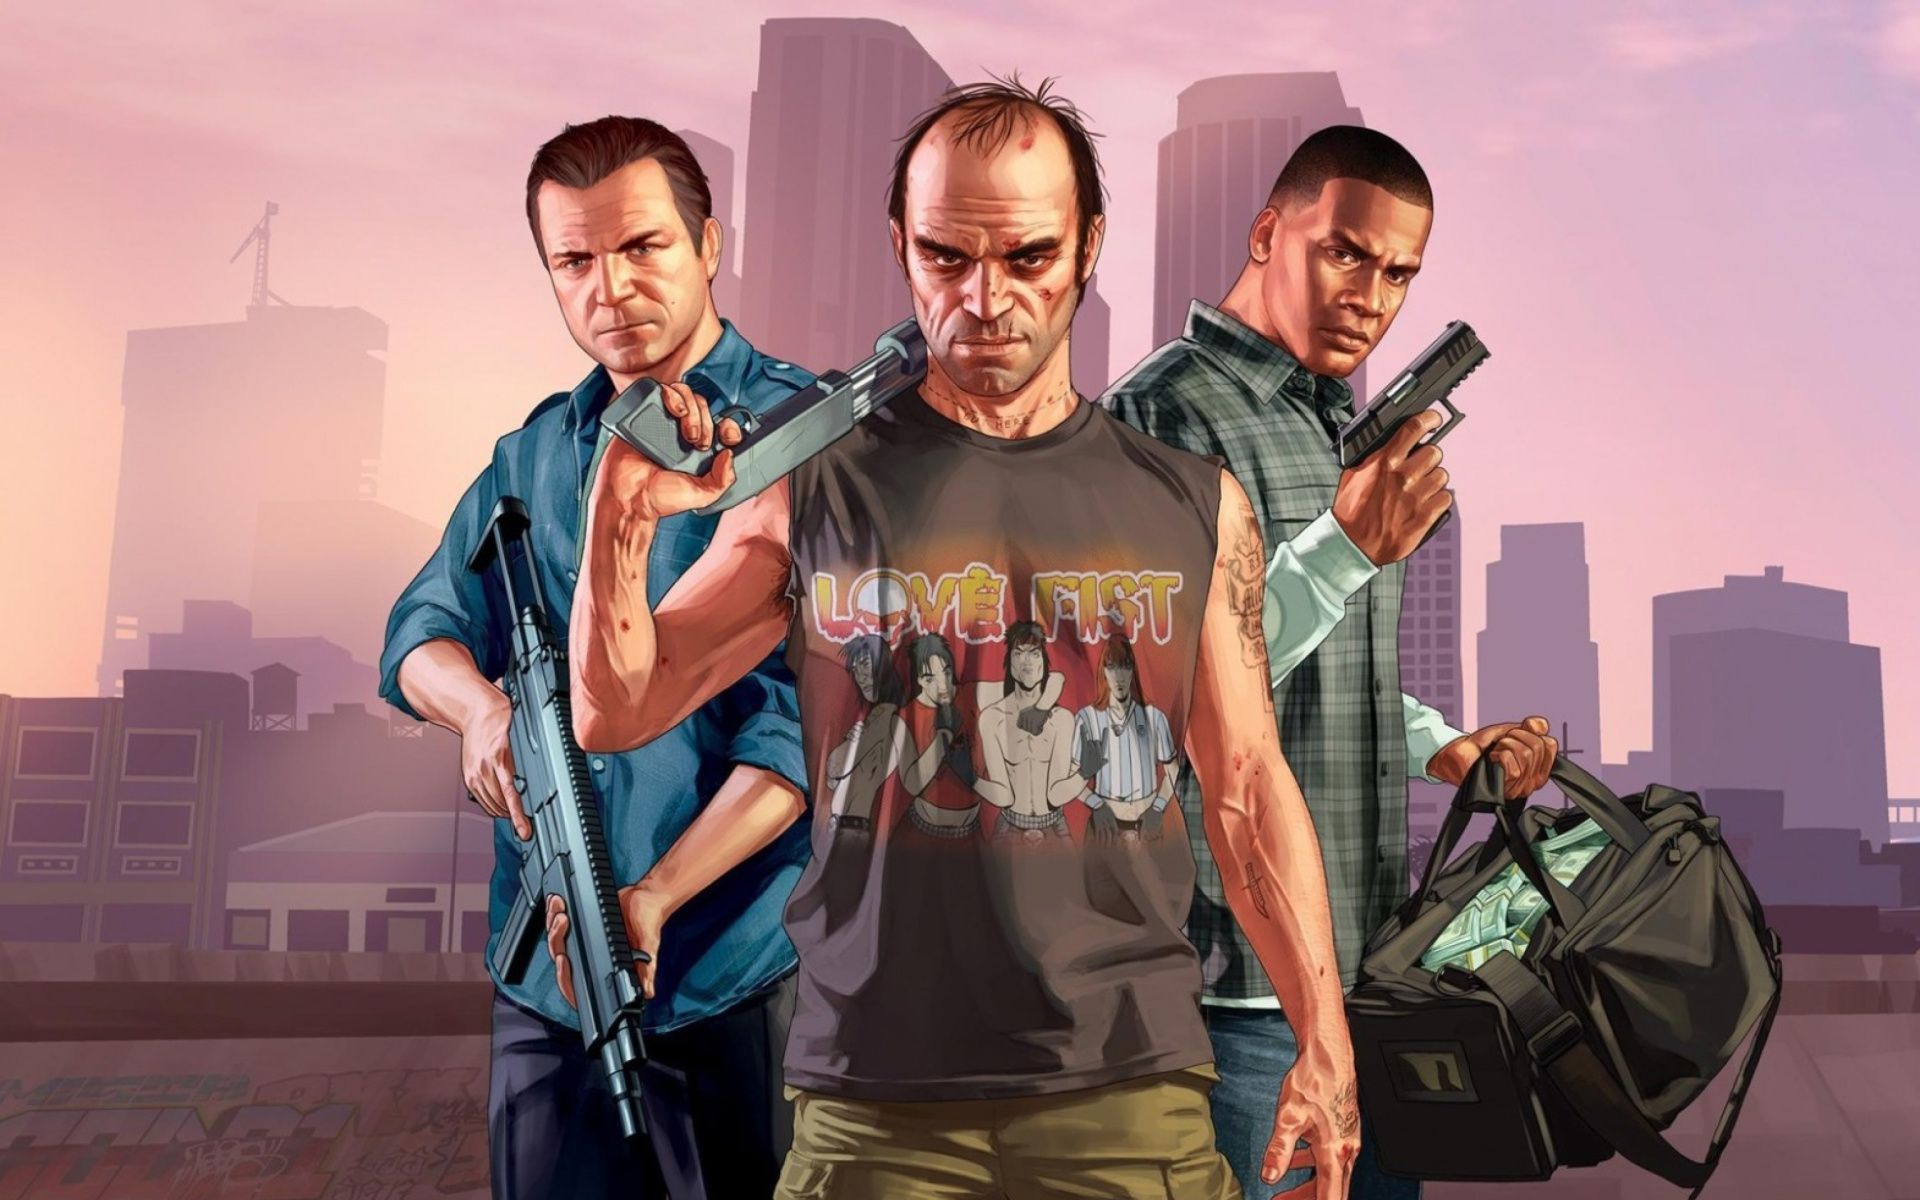 Grand theft auto 5 hd wallpapers Group  62   Video Games Wallpapers for Widescreen Desktop PC 1920x1080 Full HD